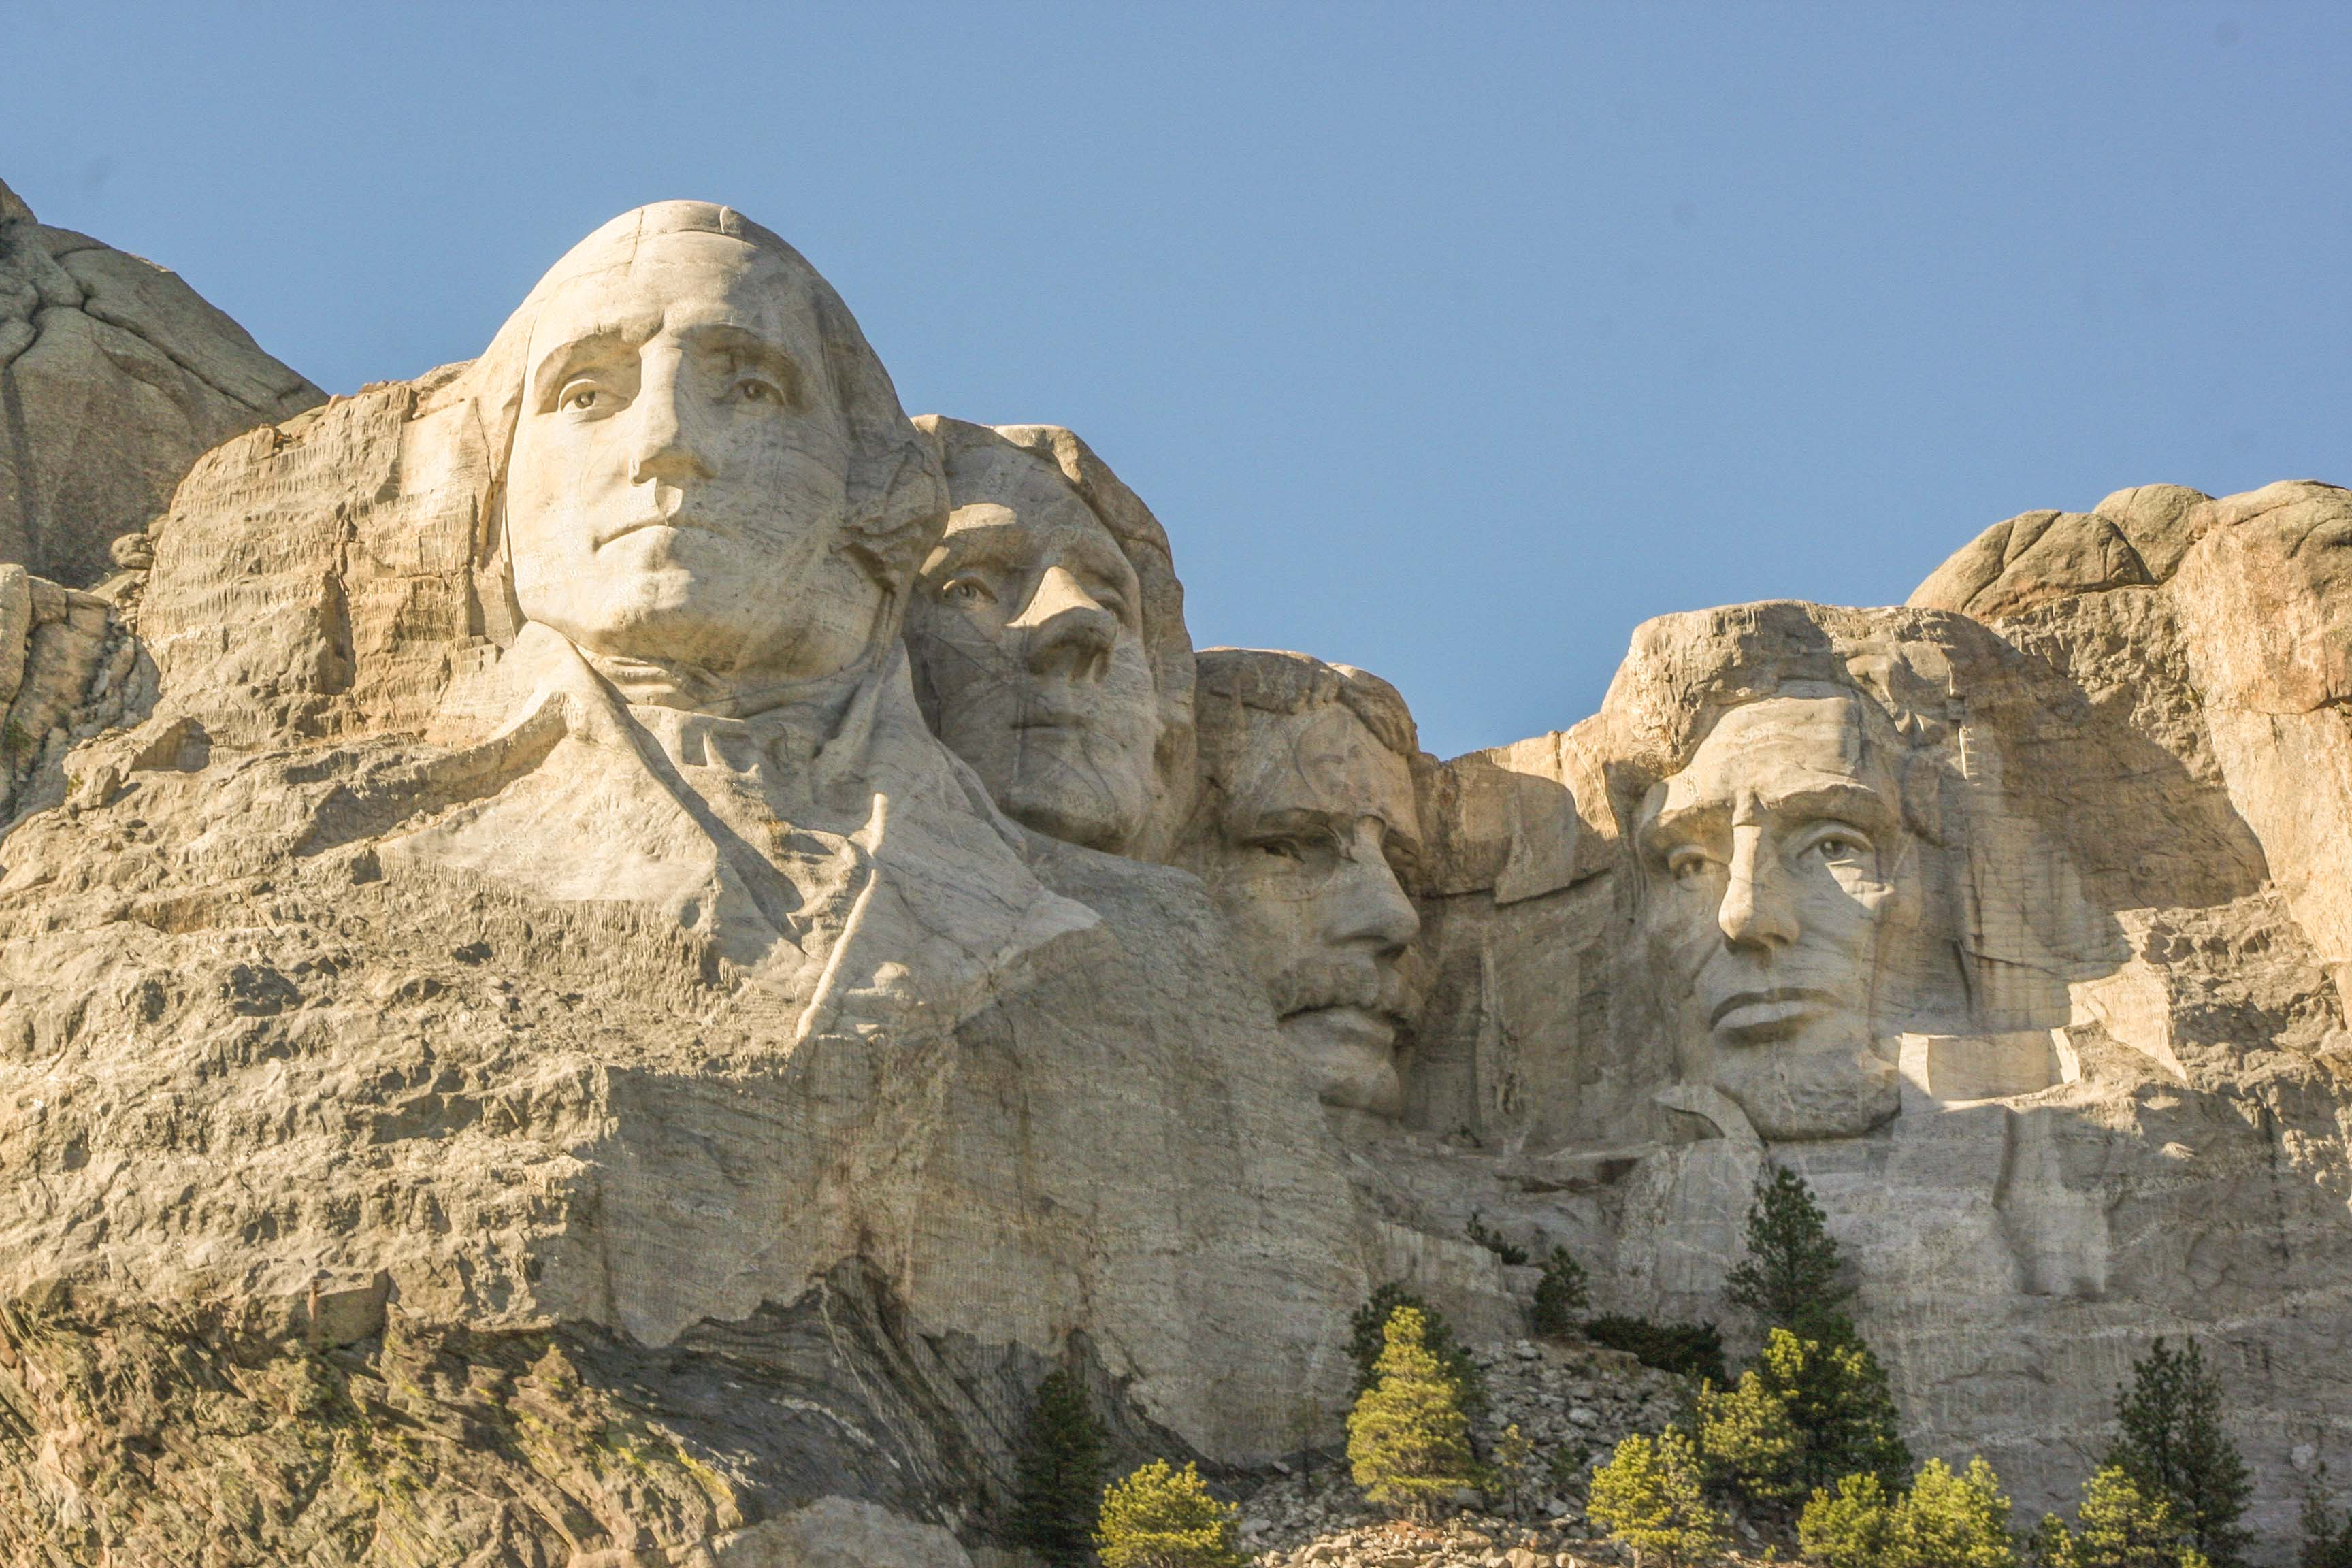 List of parks located in South Dakota